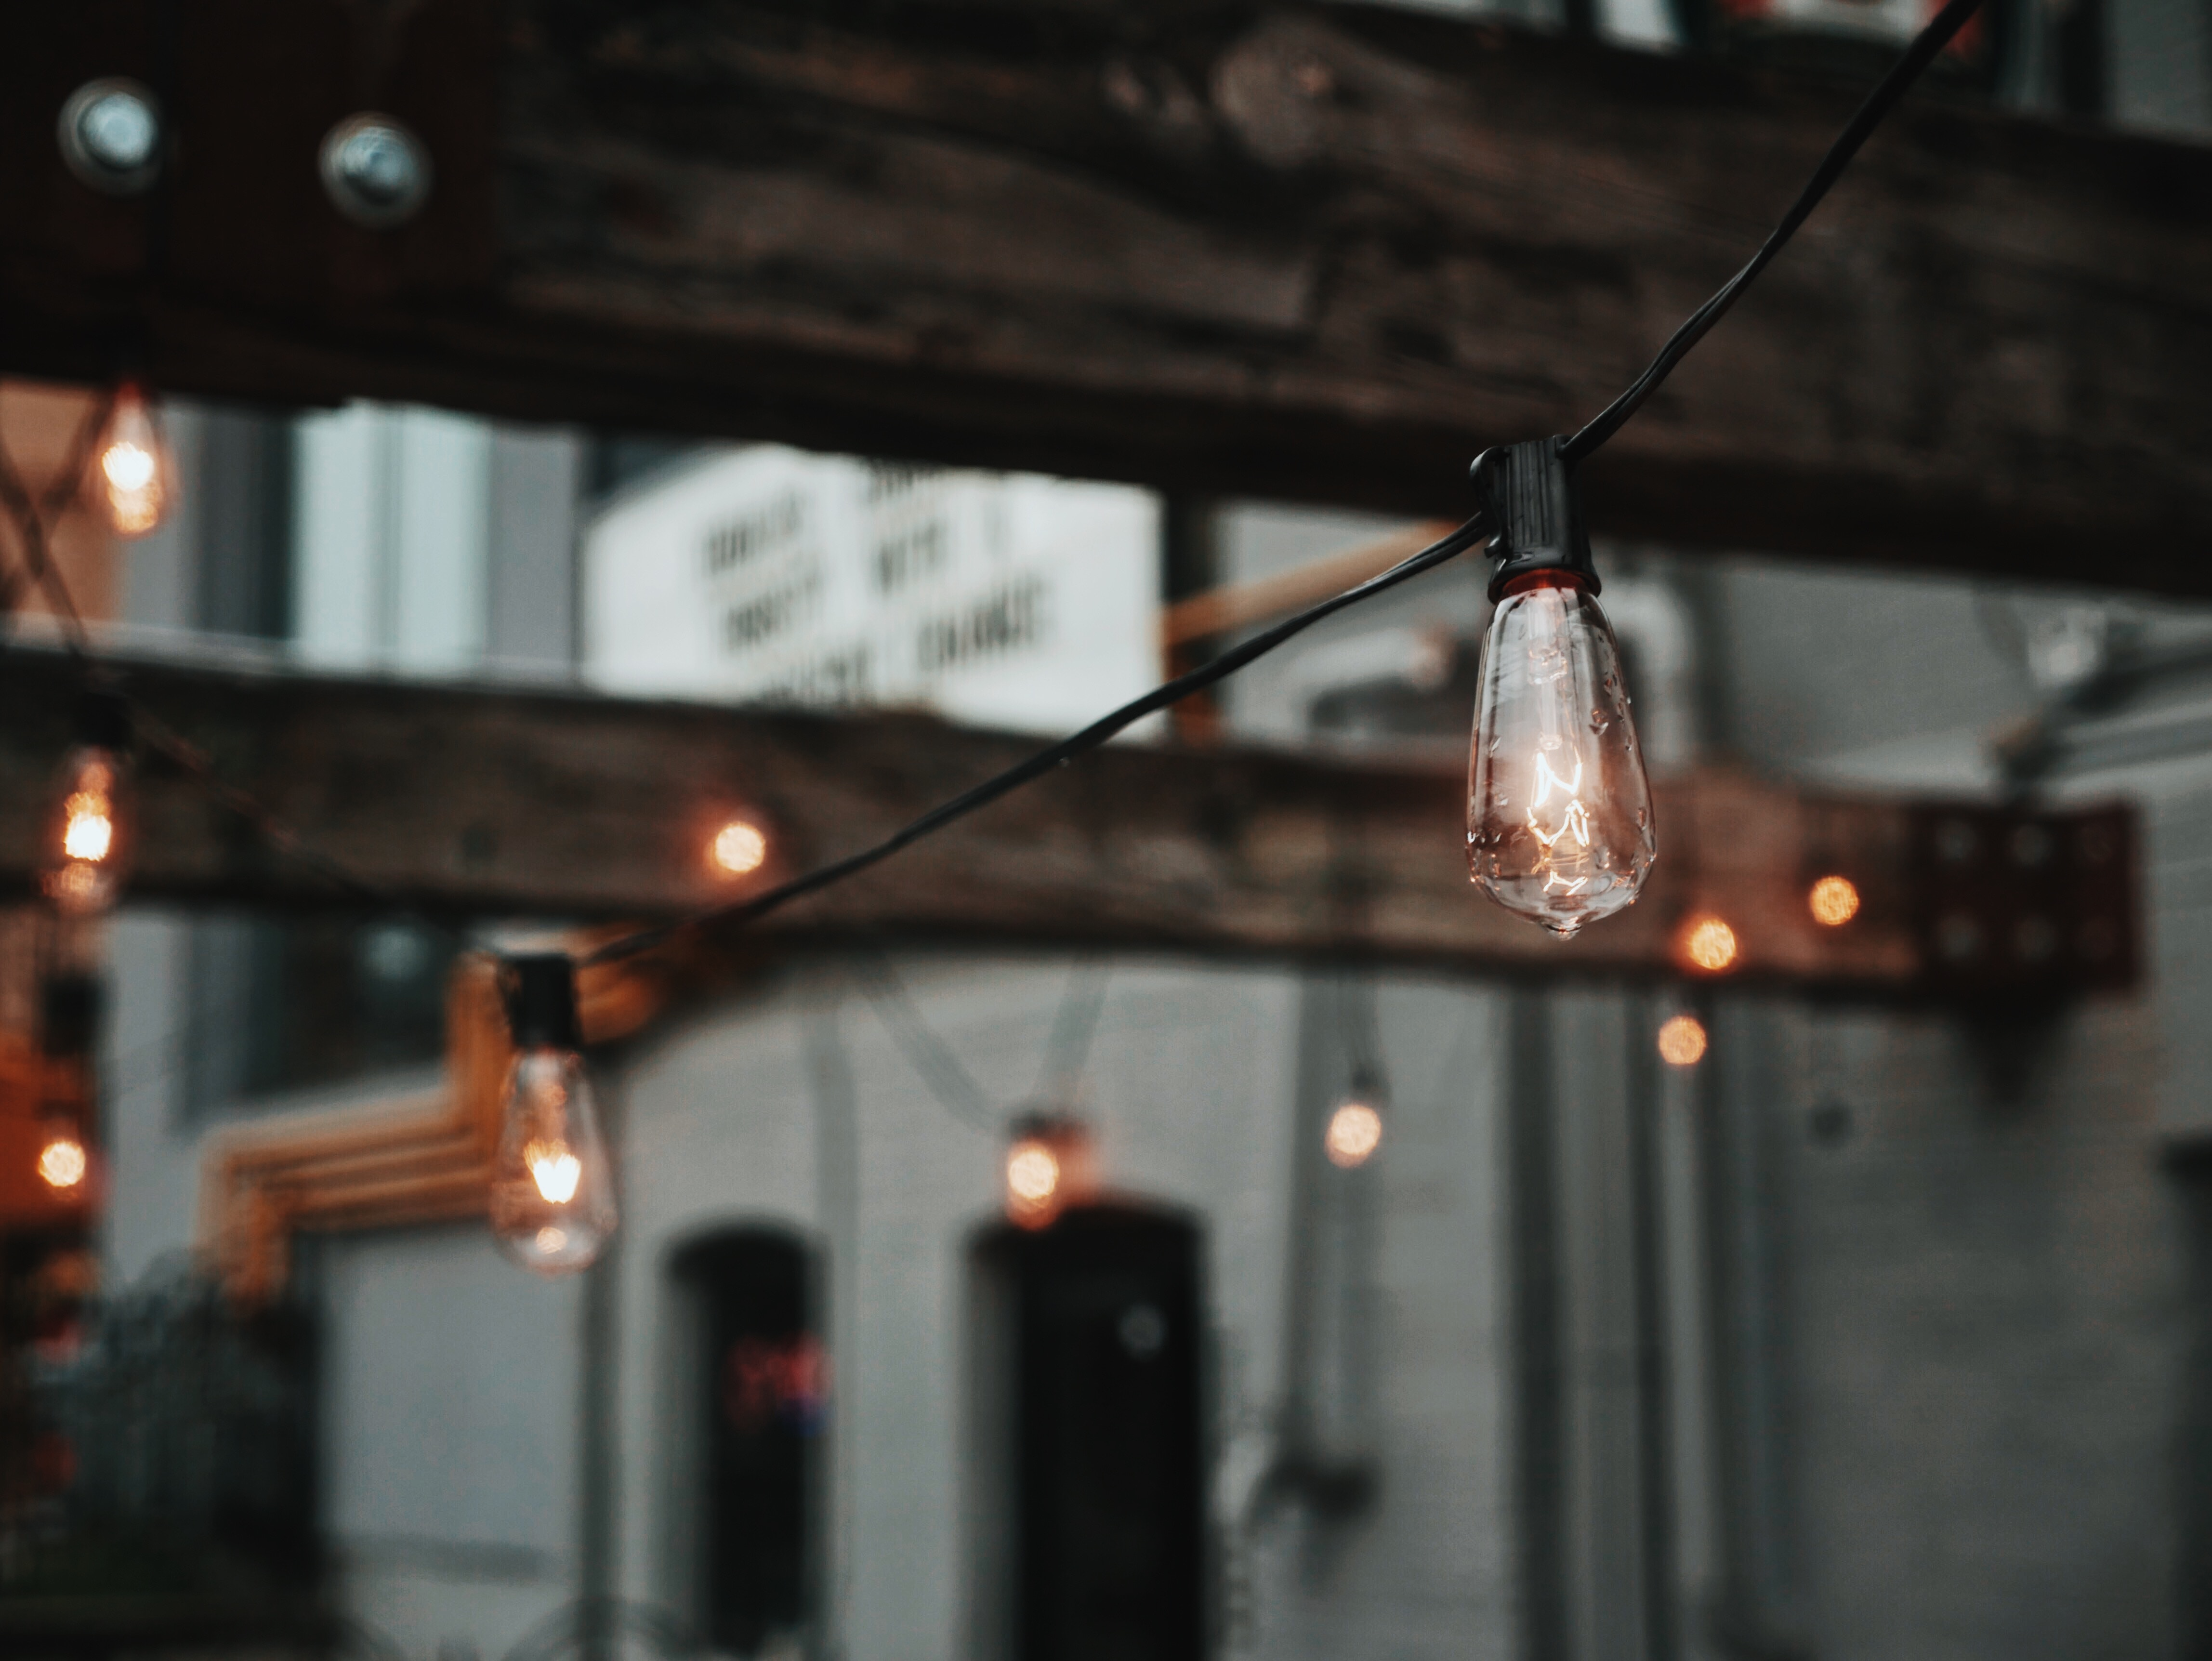 outdoor string light photo - is your electrical device CSA approved?